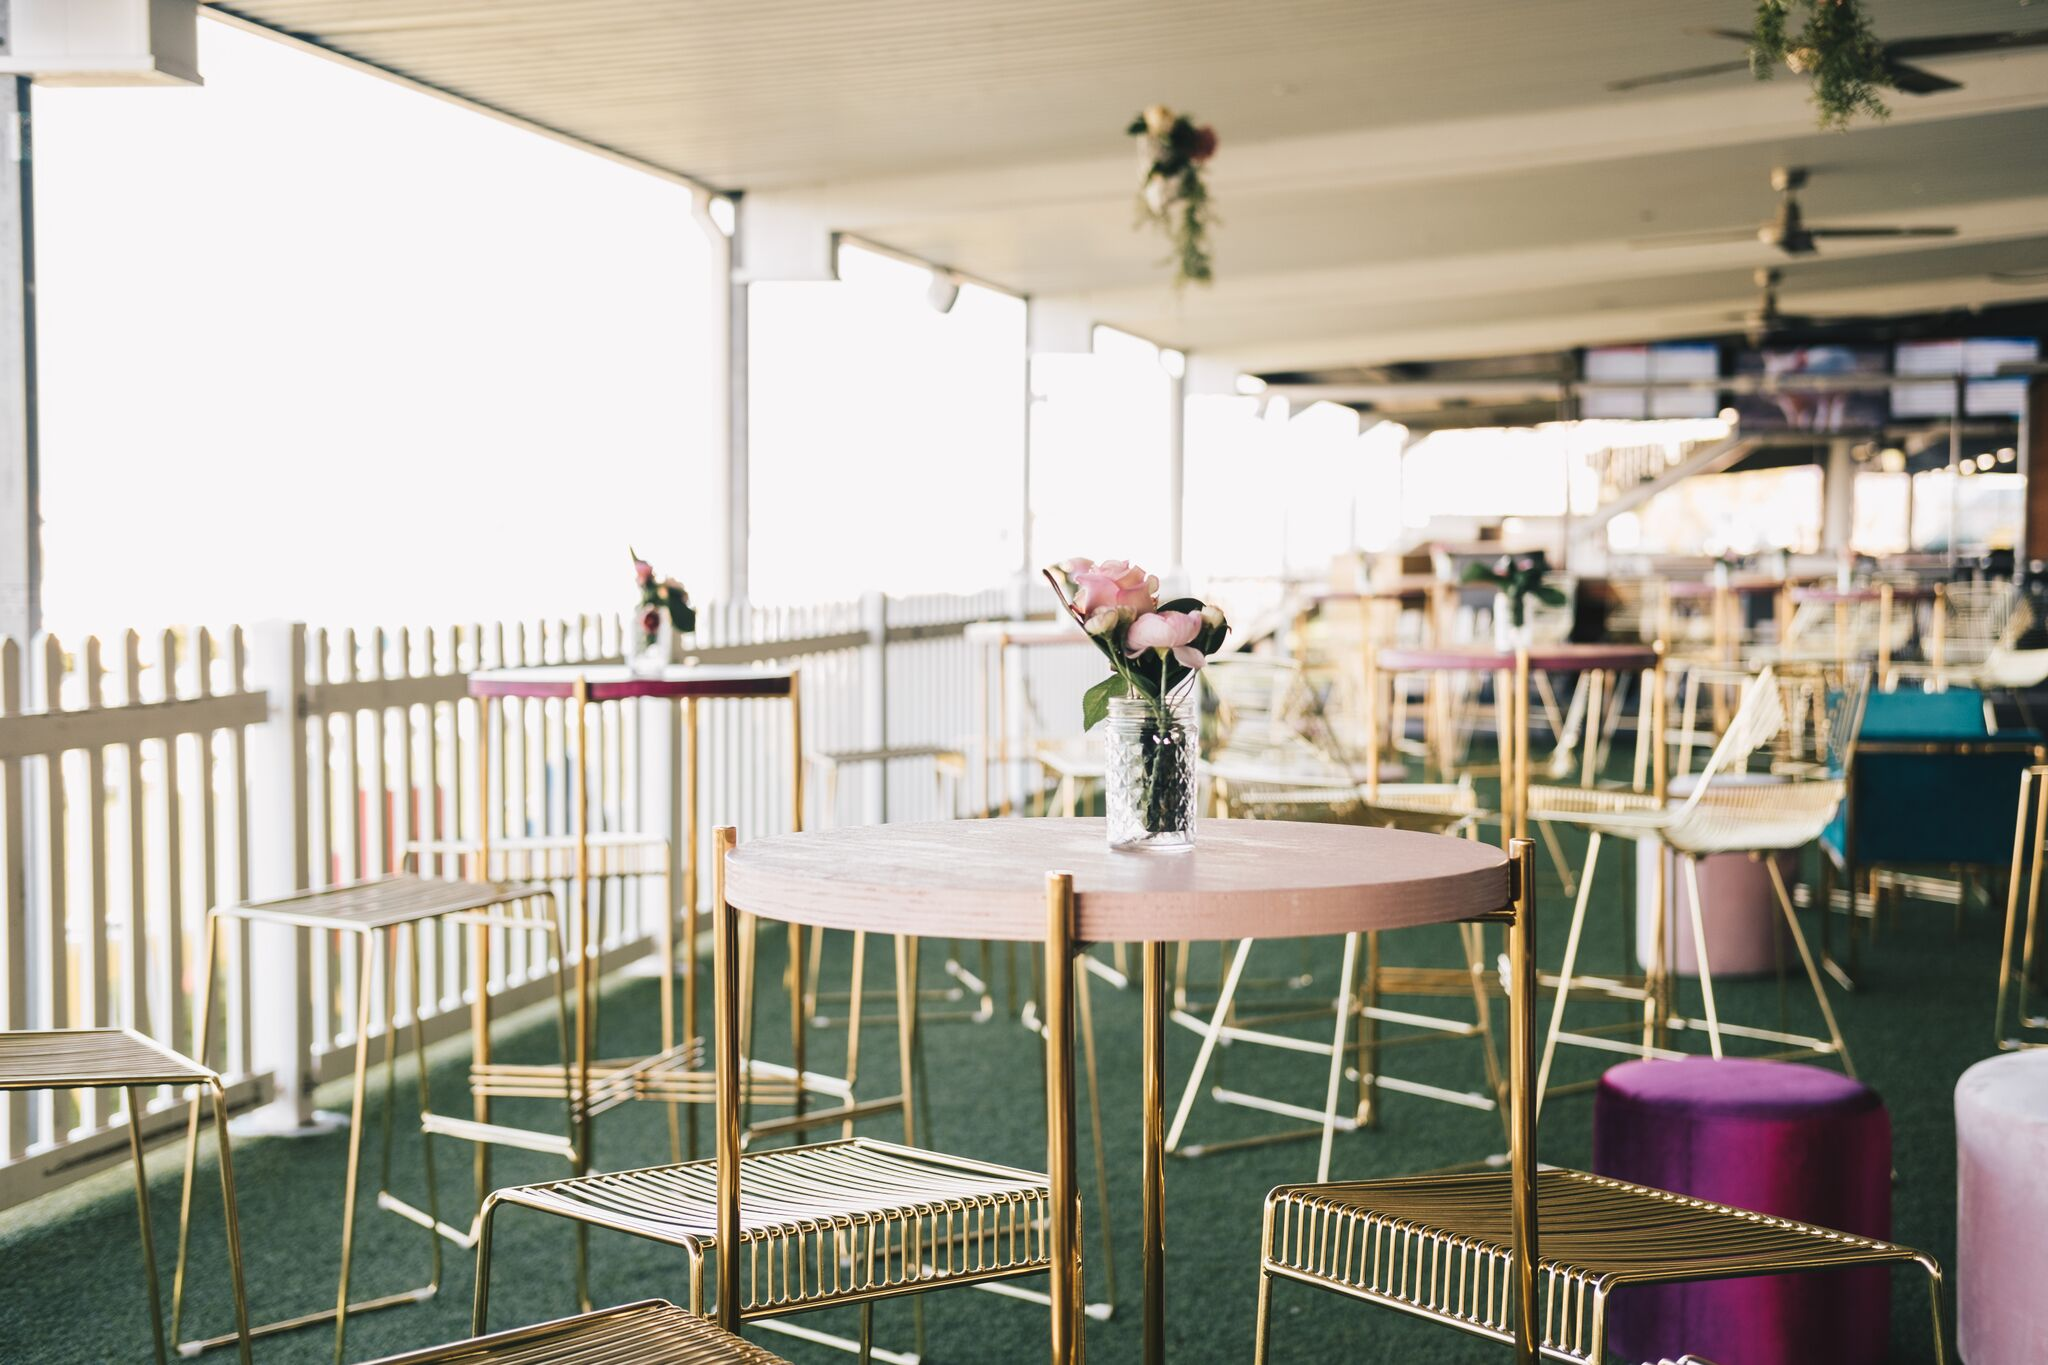 Introducing our Icelandic Collection at Hampton Event Hire - Cocktail Furniture Hire for Weddings and Events on the Gold Coast, Brisbane and Byron Bay